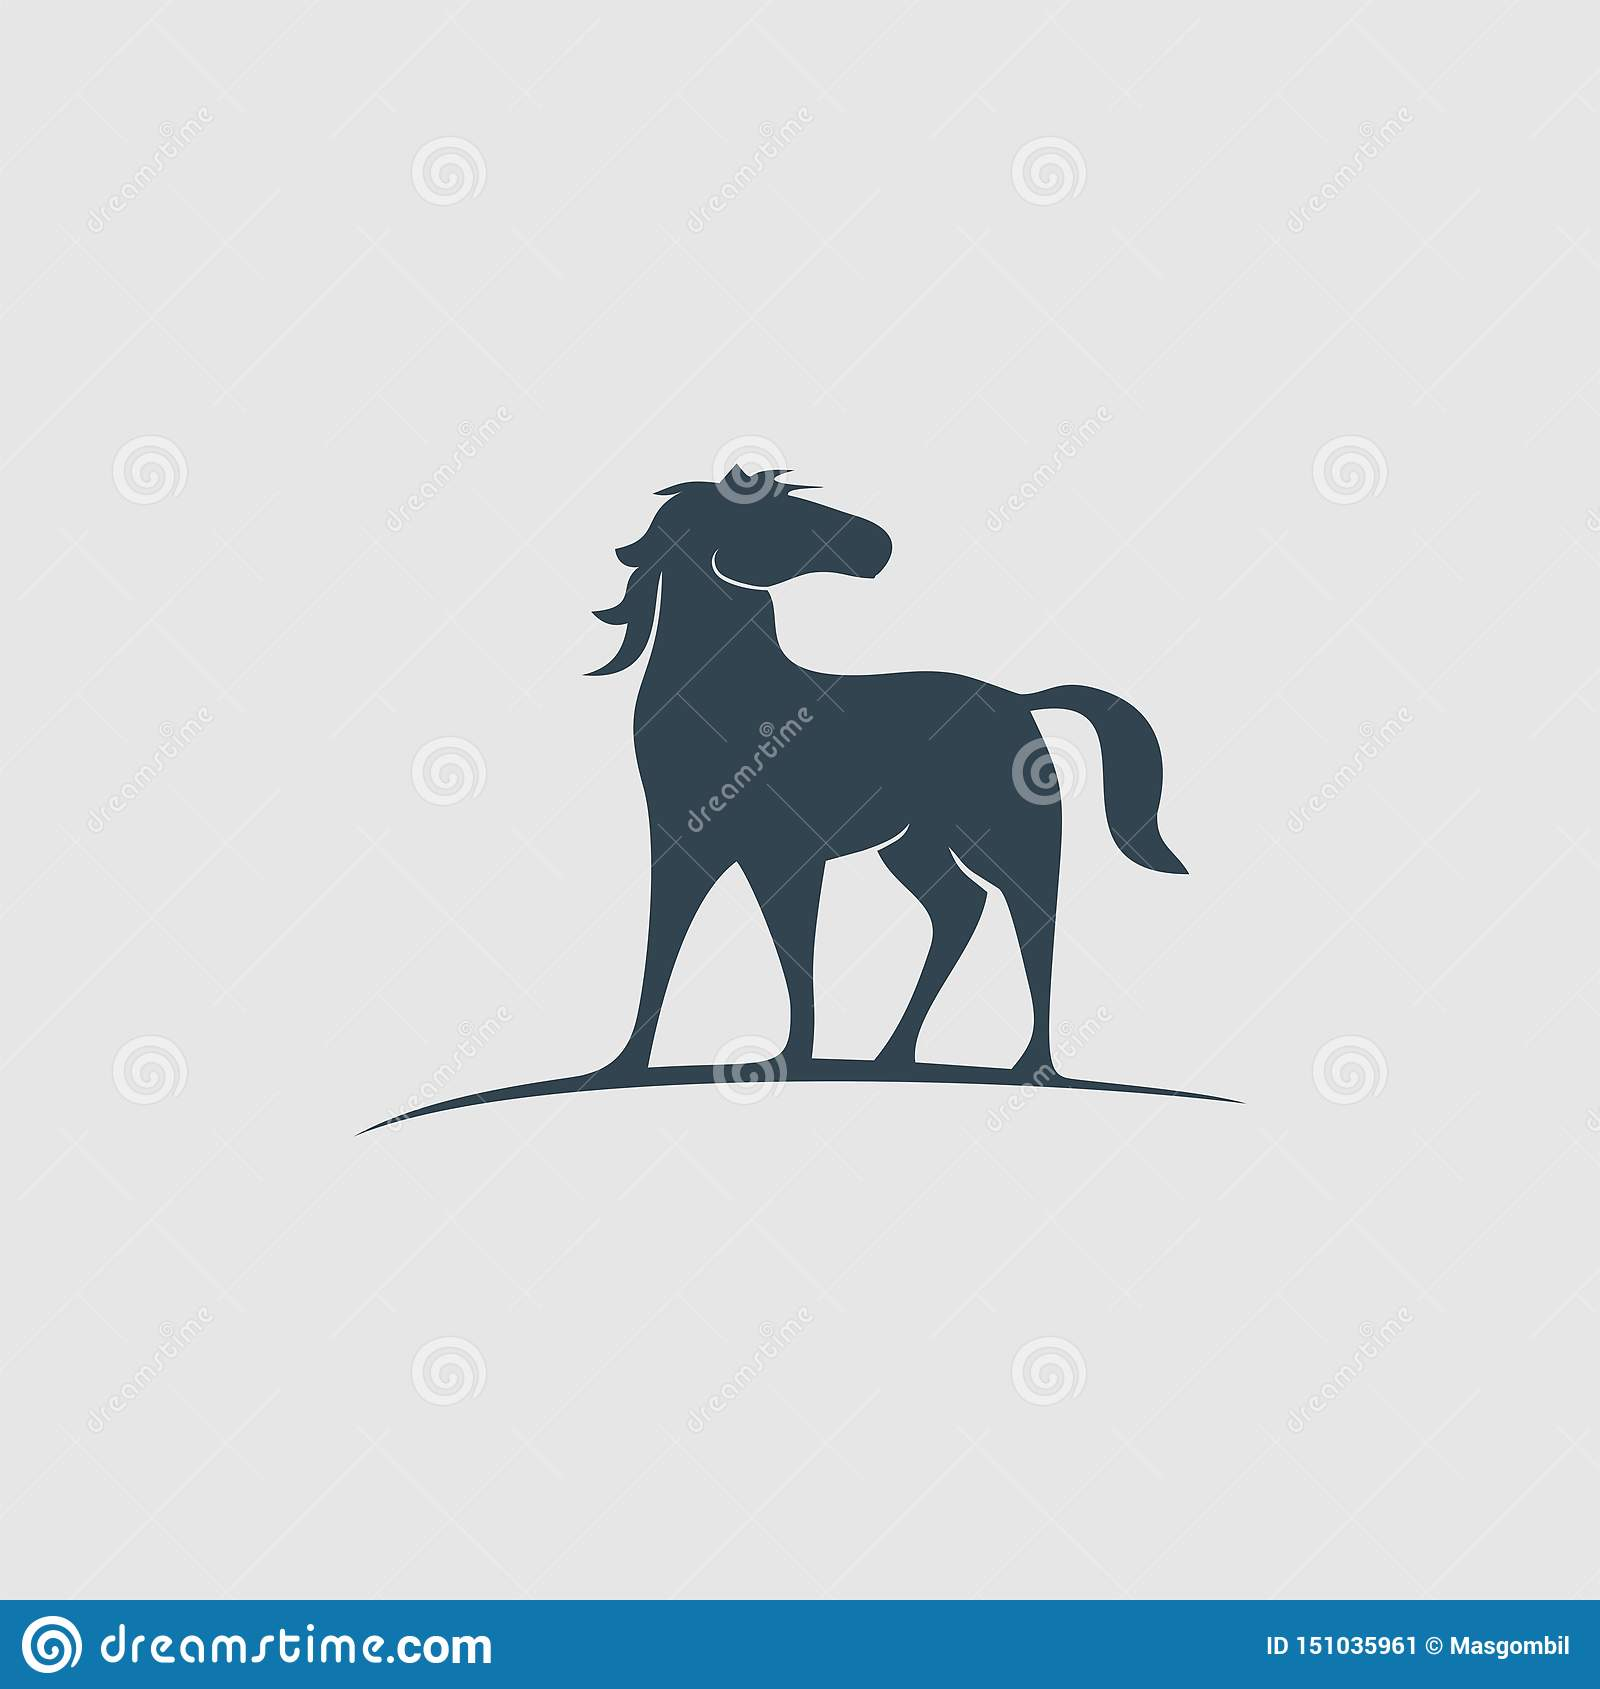 The Creative Horse Monogram Design Logo Inspiration Stock Vector Illustration Of Company Animal 151035961